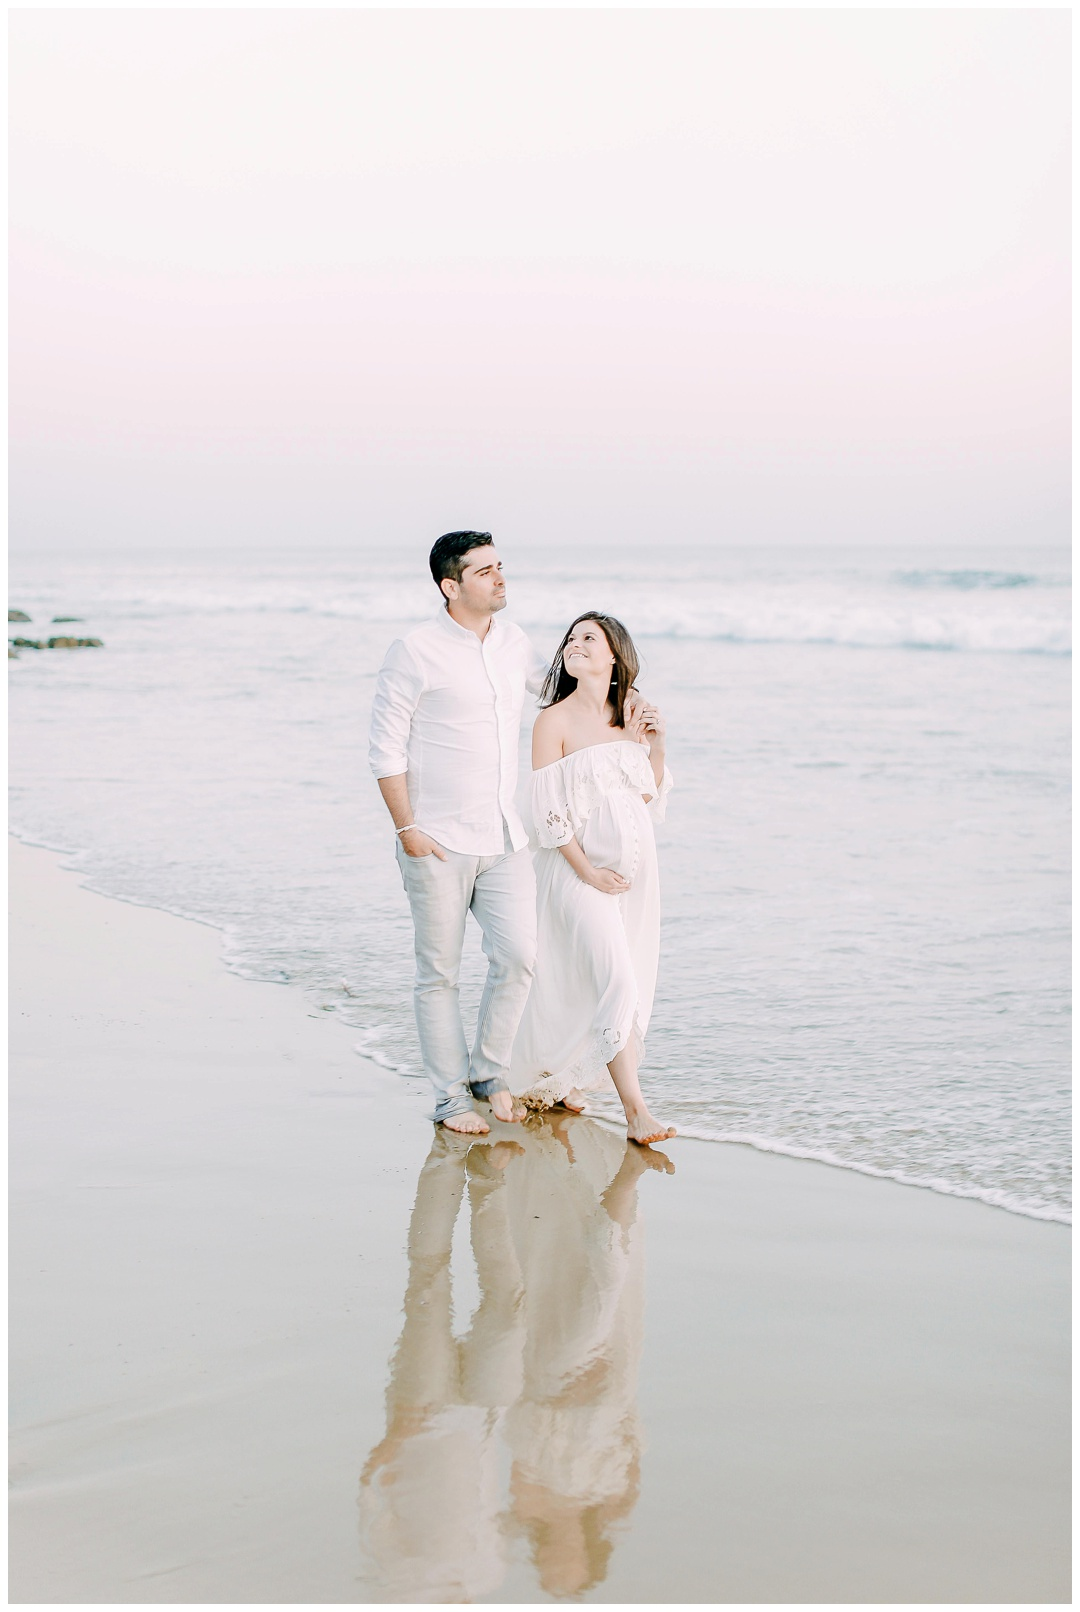 Crystal-Cove-State-Beach-Maternity-Session-Crystal-Cove-Newport-Beach-Maternity-Photographer-Crystal-Cove-Session-Cori-Kleckner-Photography-Orange-County-Maternity-Family-Photos-Session-_0886.jpg